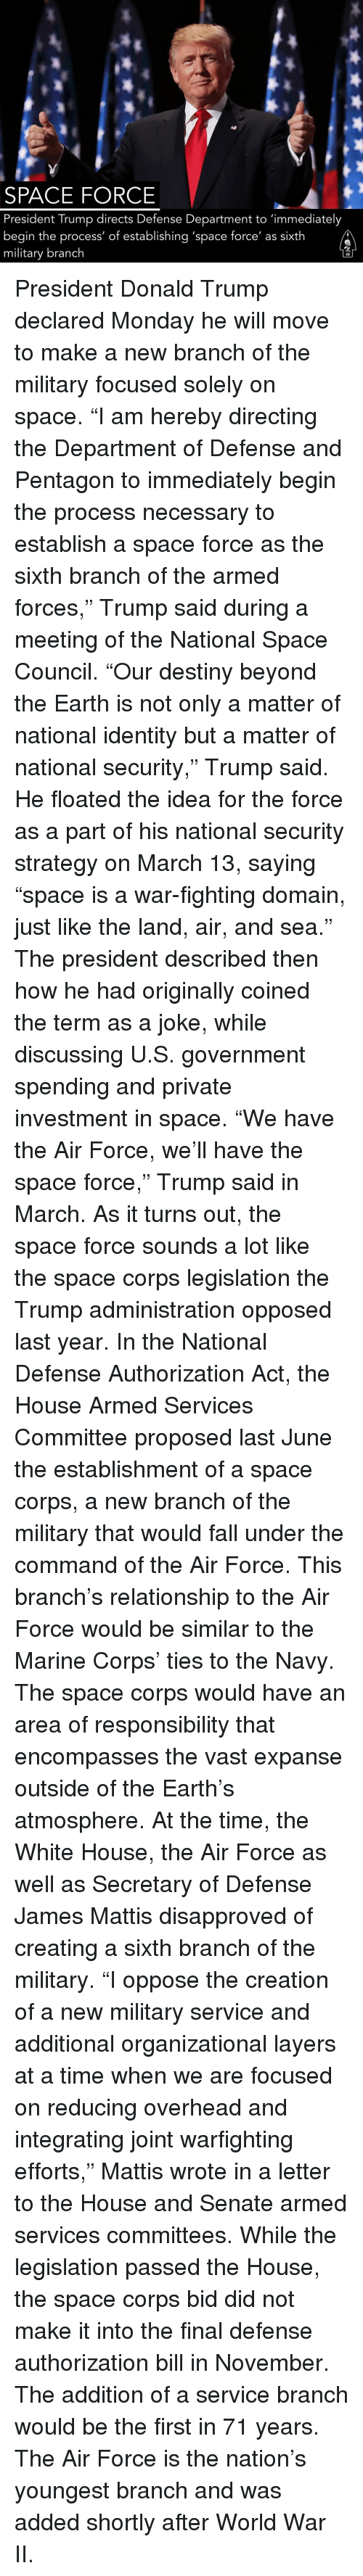 "Destiny, Donald Trump, and Fall: SPACE FORCE  President Trump directs Defense Department to 'immediately  begin the process' of establishing 'space force' as sixth  military branch President Donald Trump declared Monday he will move to make a new branch of the military focused solely on space. ""I am hereby directing the Department of Defense and Pentagon to immediately begin the process necessary to establish a space force as the sixth branch of the armed forces,"" Trump said during a meeting of the National Space Council. ""Our destiny beyond the Earth is not only a matter of national identity but a matter of national security,"" Trump said. He floated the idea for the force as a part of his national security strategy on March 13, saying ""space is a war-fighting domain, just like the land, air, and sea."" The president described then how he had originally coined the term as a joke, while discussing U.S. government spending and private investment in space. ""We have the Air Force, we'll have the space force,"" Trump said in March. As it turns out, the space force sounds a lot like the space corps legislation the Trump administration opposed last year. In the National Defense Authorization Act, the House Armed Services Committee proposed last June the establishment of a space corps, a new branch of the military that would fall under the command of the Air Force. This branch's relationship to the Air Force would be similar to the Marine Corps' ties to the Navy. The space corps would have an area of responsibility that encompasses the vast expanse outside of the Earth's atmosphere. At the time, the White House, the Air Force as well as Secretary of Defense James Mattis disapproved of creating a sixth branch of the military. ""I oppose the creation of a new military service and additional organizational layers at a time when we are focused on reducing overhead and integrating joint warfighting efforts,"" Mattis wrote in a letter to the House and Senate armed services committees. While the legislation passed the House, the space corps bid did not make it into the final defense authorization bill in November. The addition of a service branch would be the first in 71 years. The Air Force is the nation's youngest branch and was added shortly after World War II."